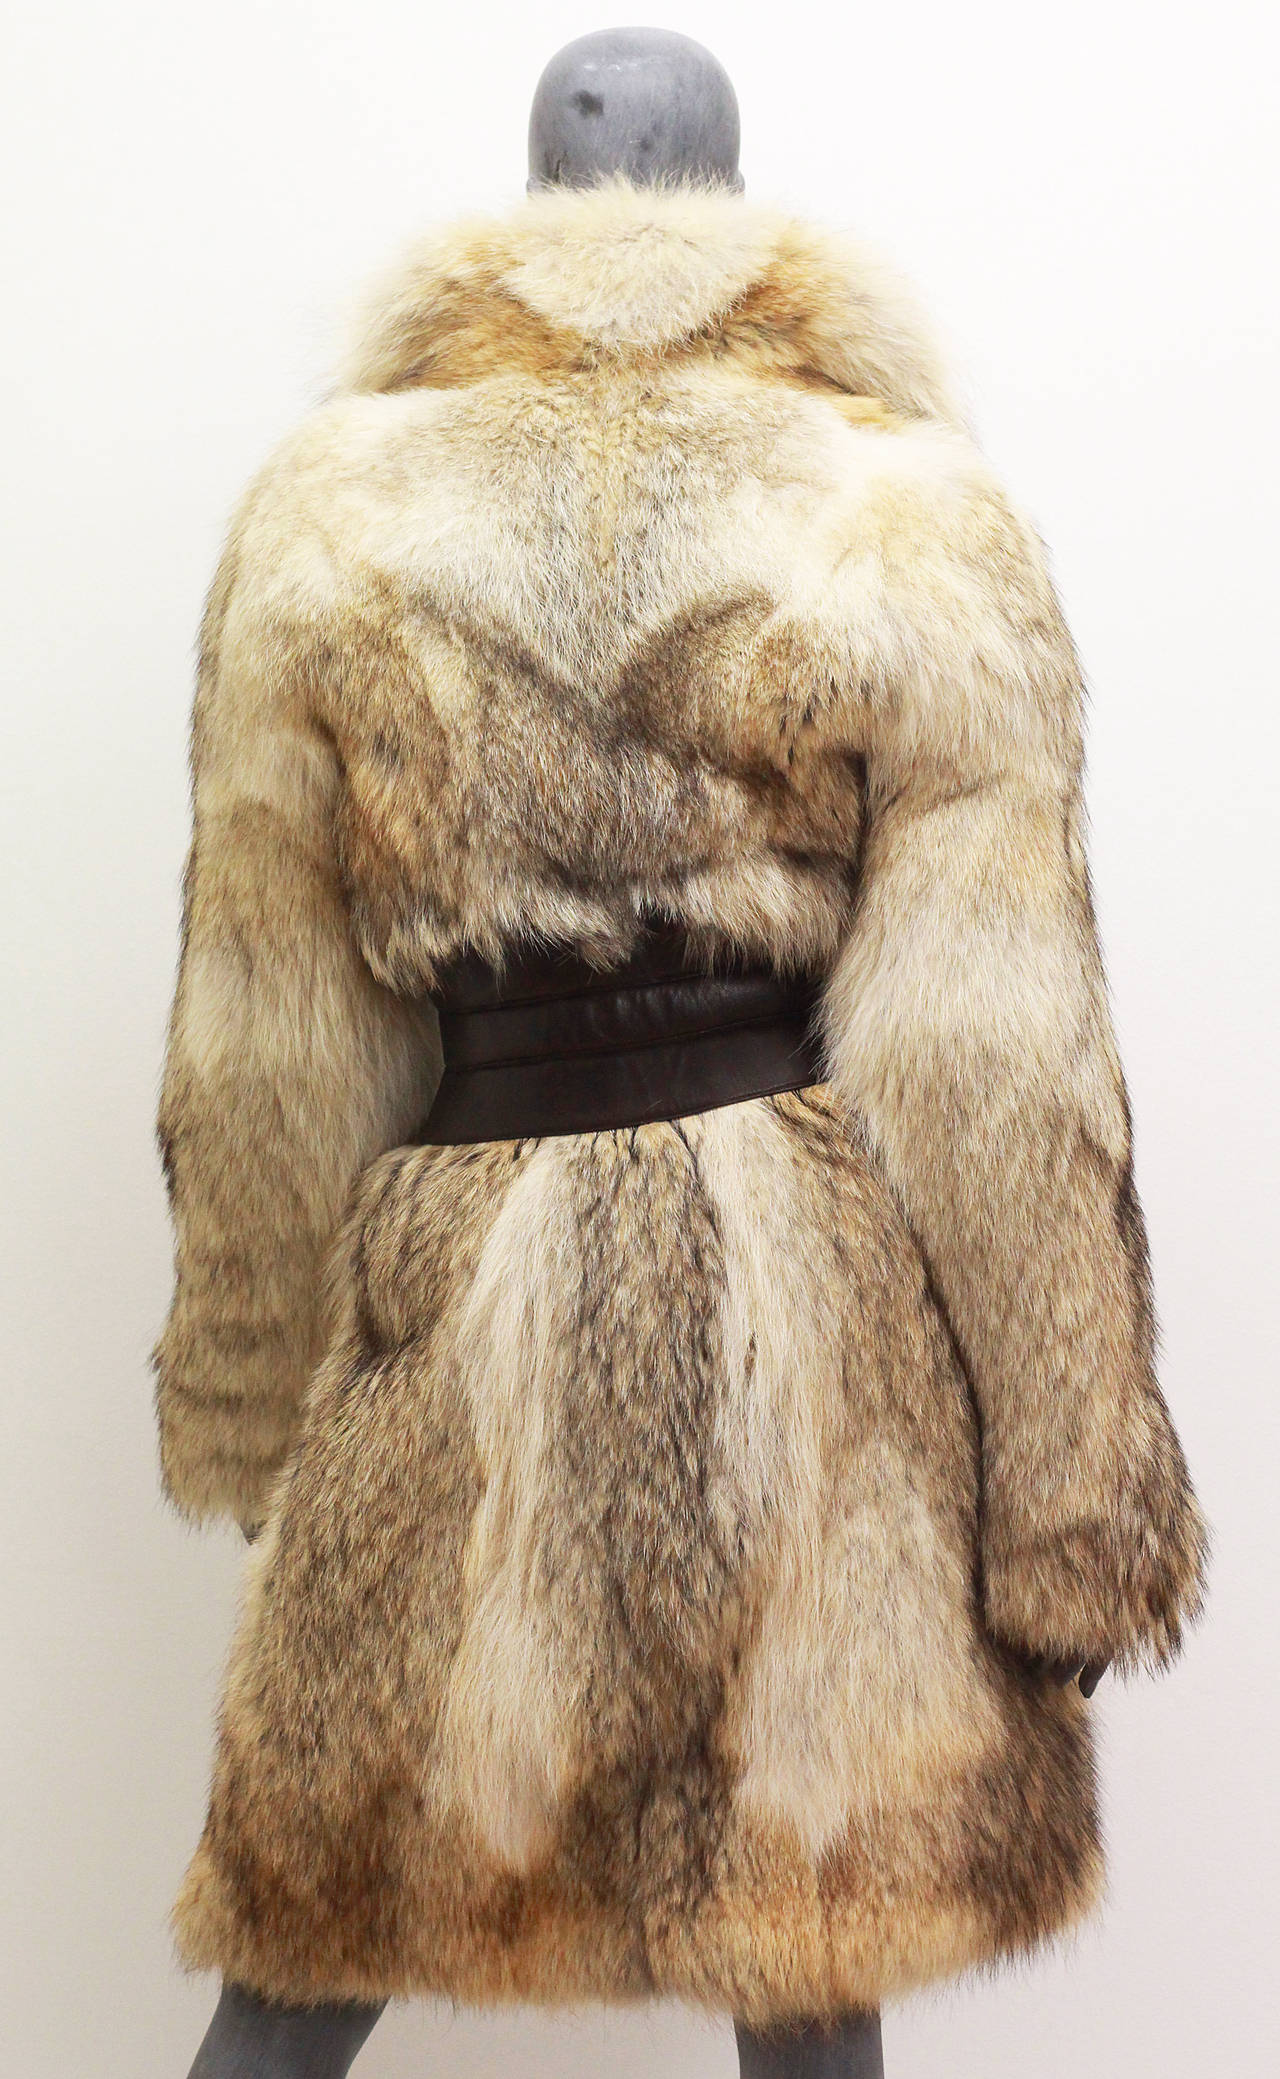 Fine and rare Alexander McQueen Corseted Coyote Fur Coat (Pre-Death) Circa 2006 3